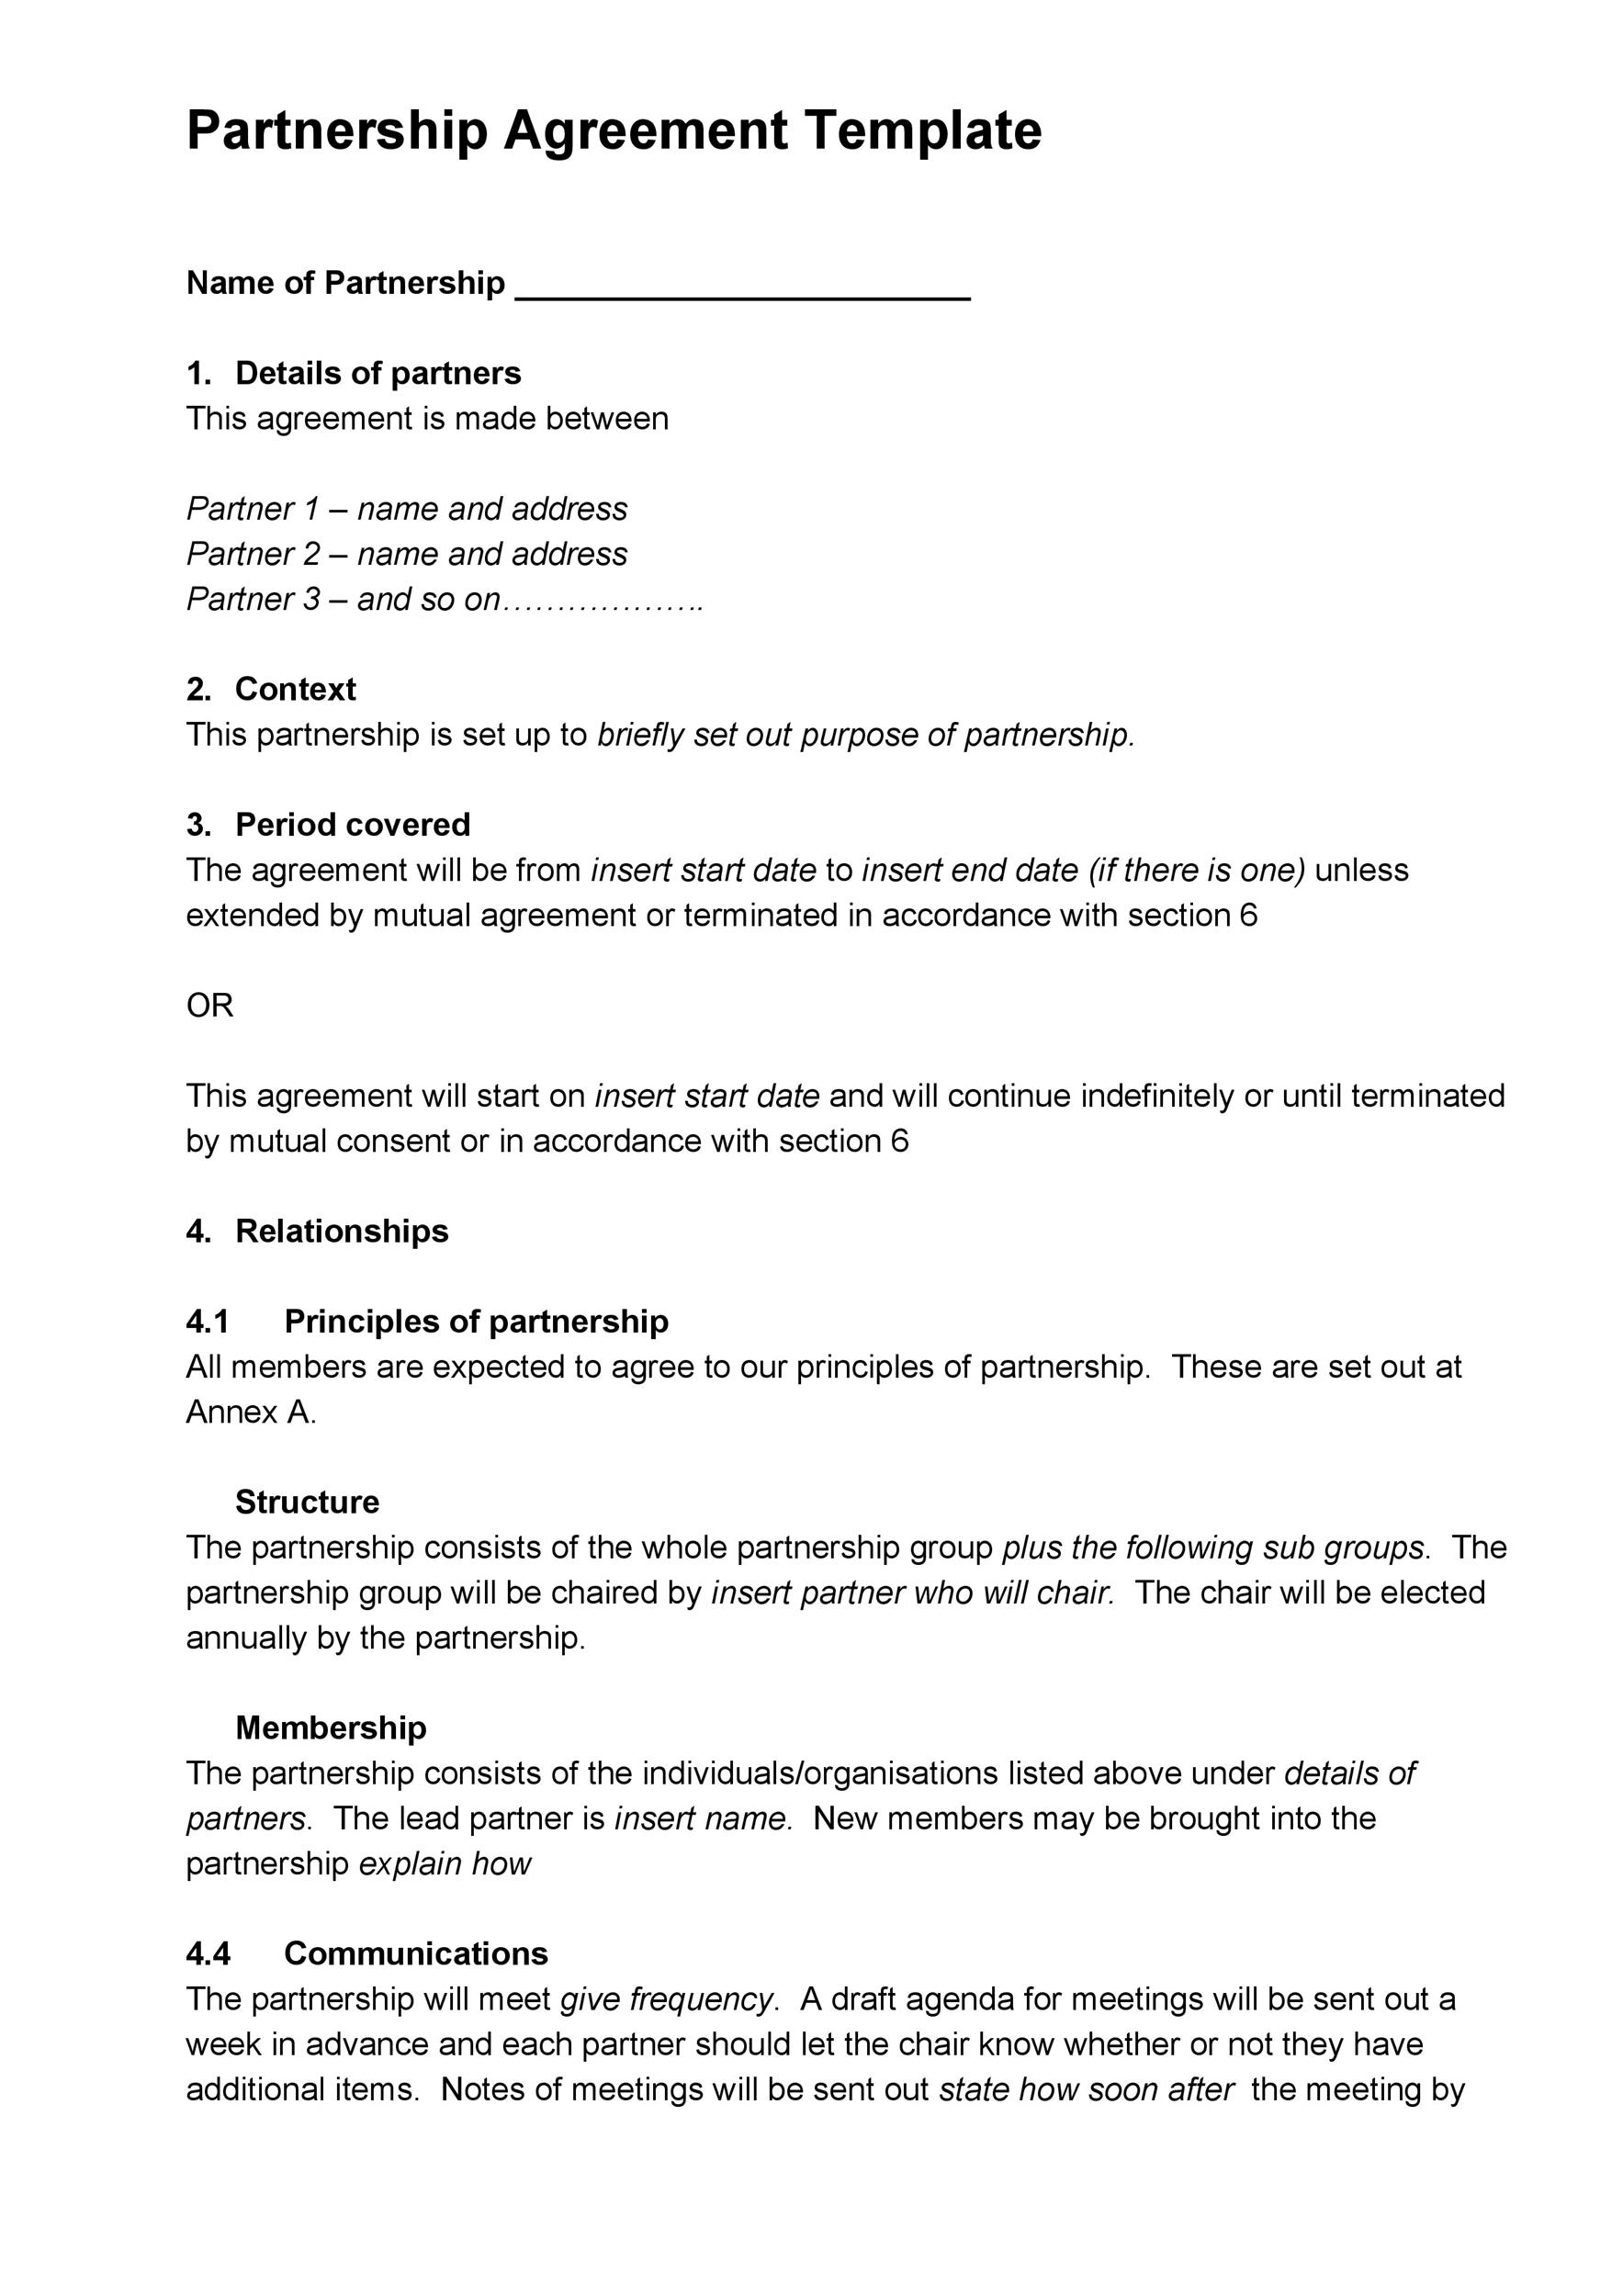 Partnership Agreement Template 40